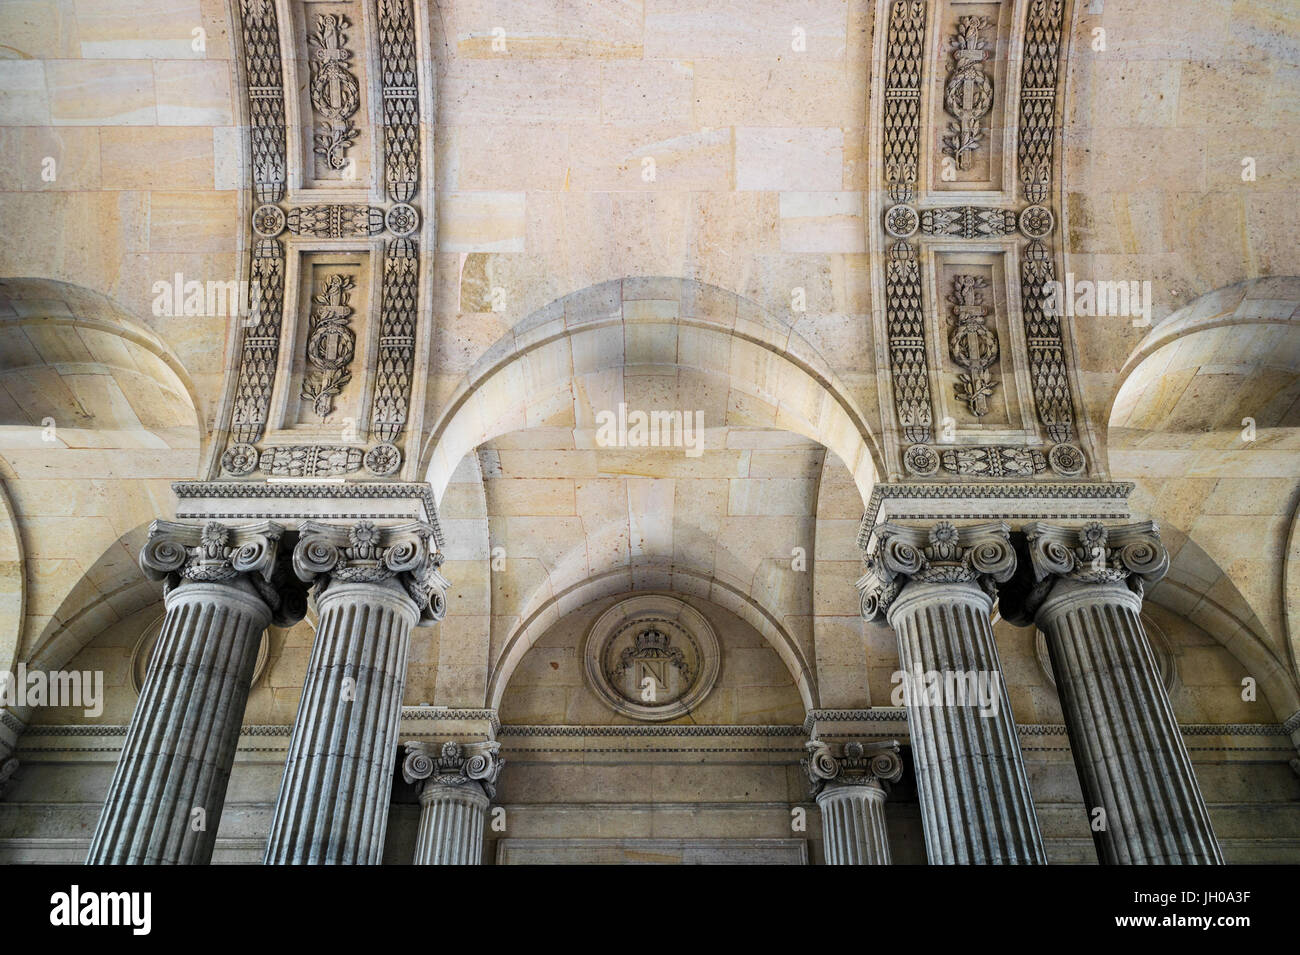 PARIS, FRANCE - JUNE 21, 2017: Cross vaulted ceiling with sculpted columns and Napoleon emblem. - Stock Image